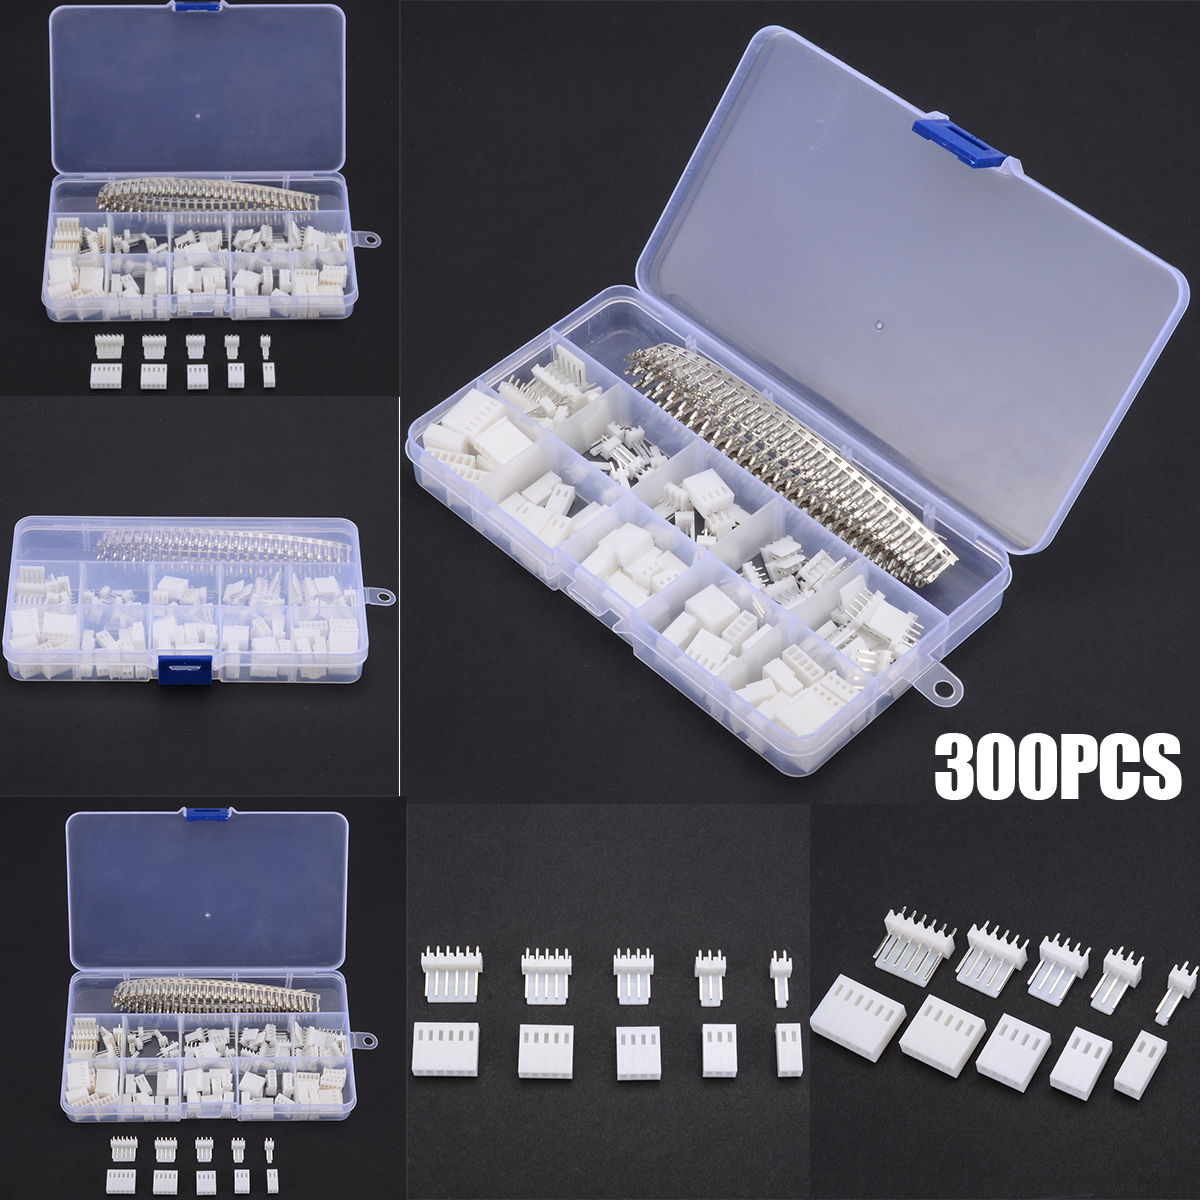 300pcs/set KF2510 2.54mm 2 3 4 5 <font><b>6</b></font> <font><b>Pin</b></font> White Wire Terminal <font><b>Pin</b></font> Female Terminal Housing <font><b>Header</b></font> Wire Connector image